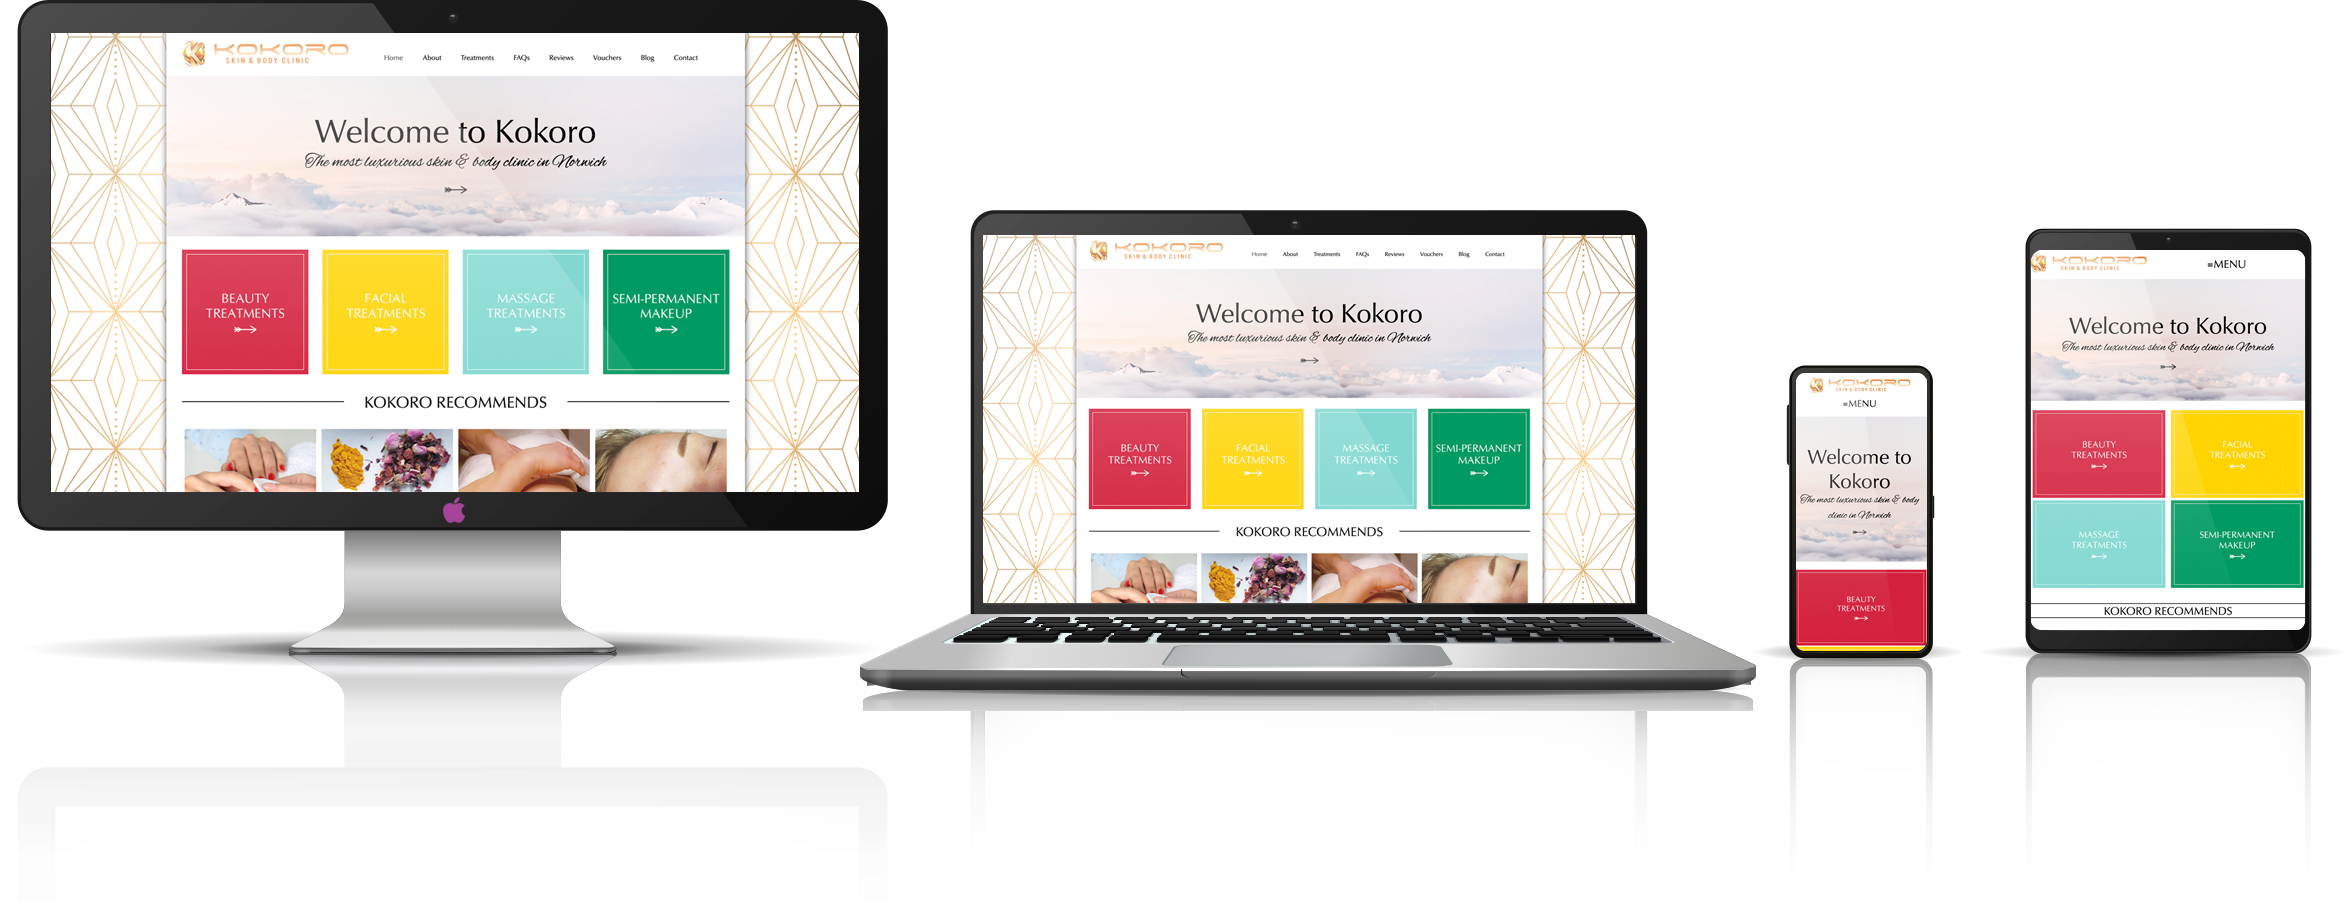 The KOKORO skin & body clinic fully responsive mock-up images showing desktop, laptop, tablet, and mobile phone devices.